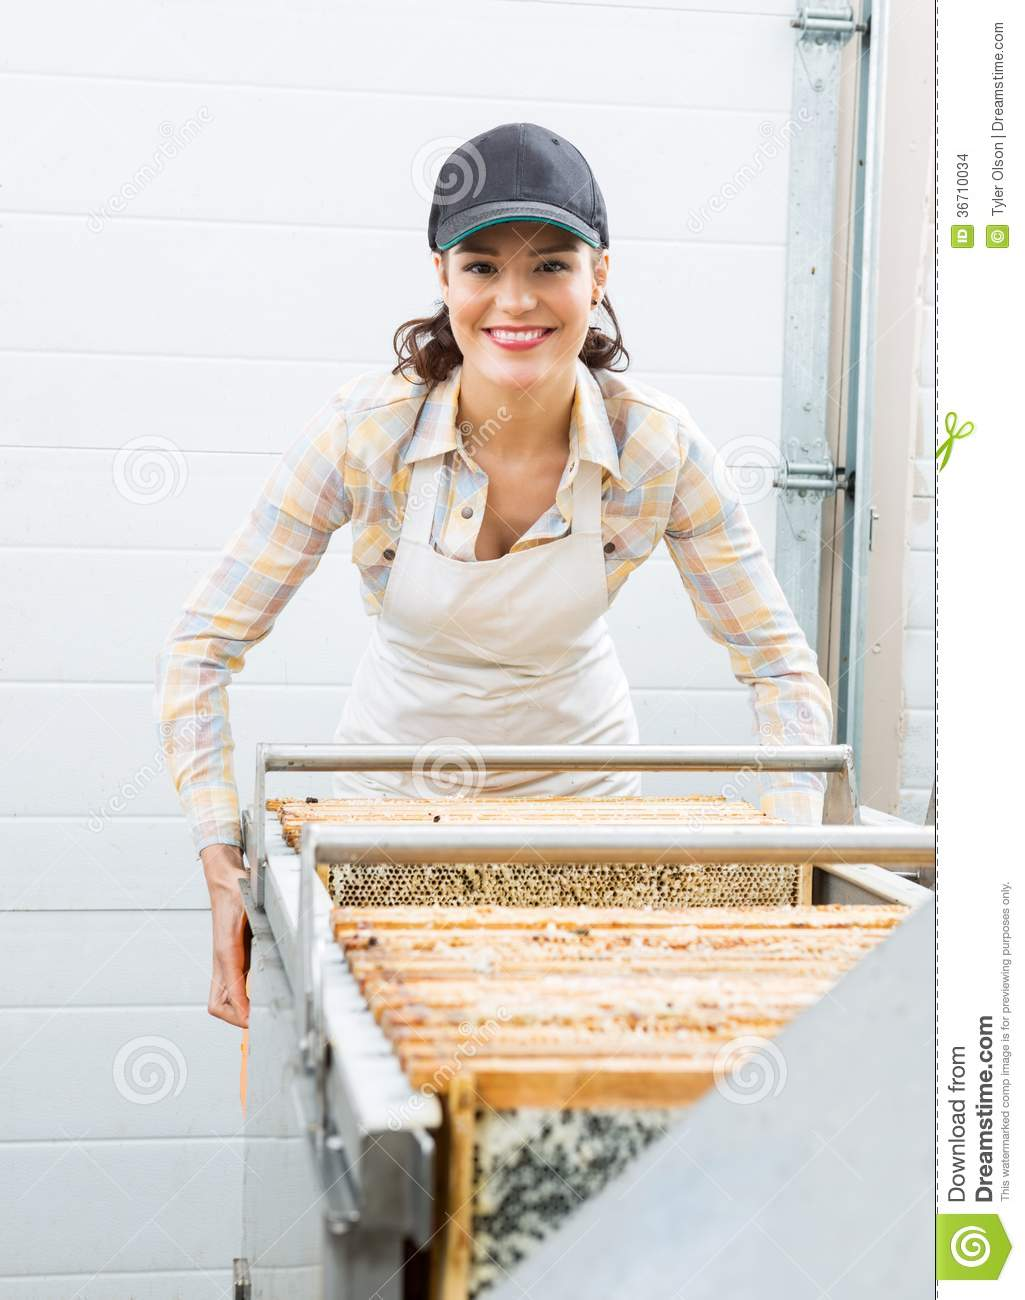 Beekeeping business plan